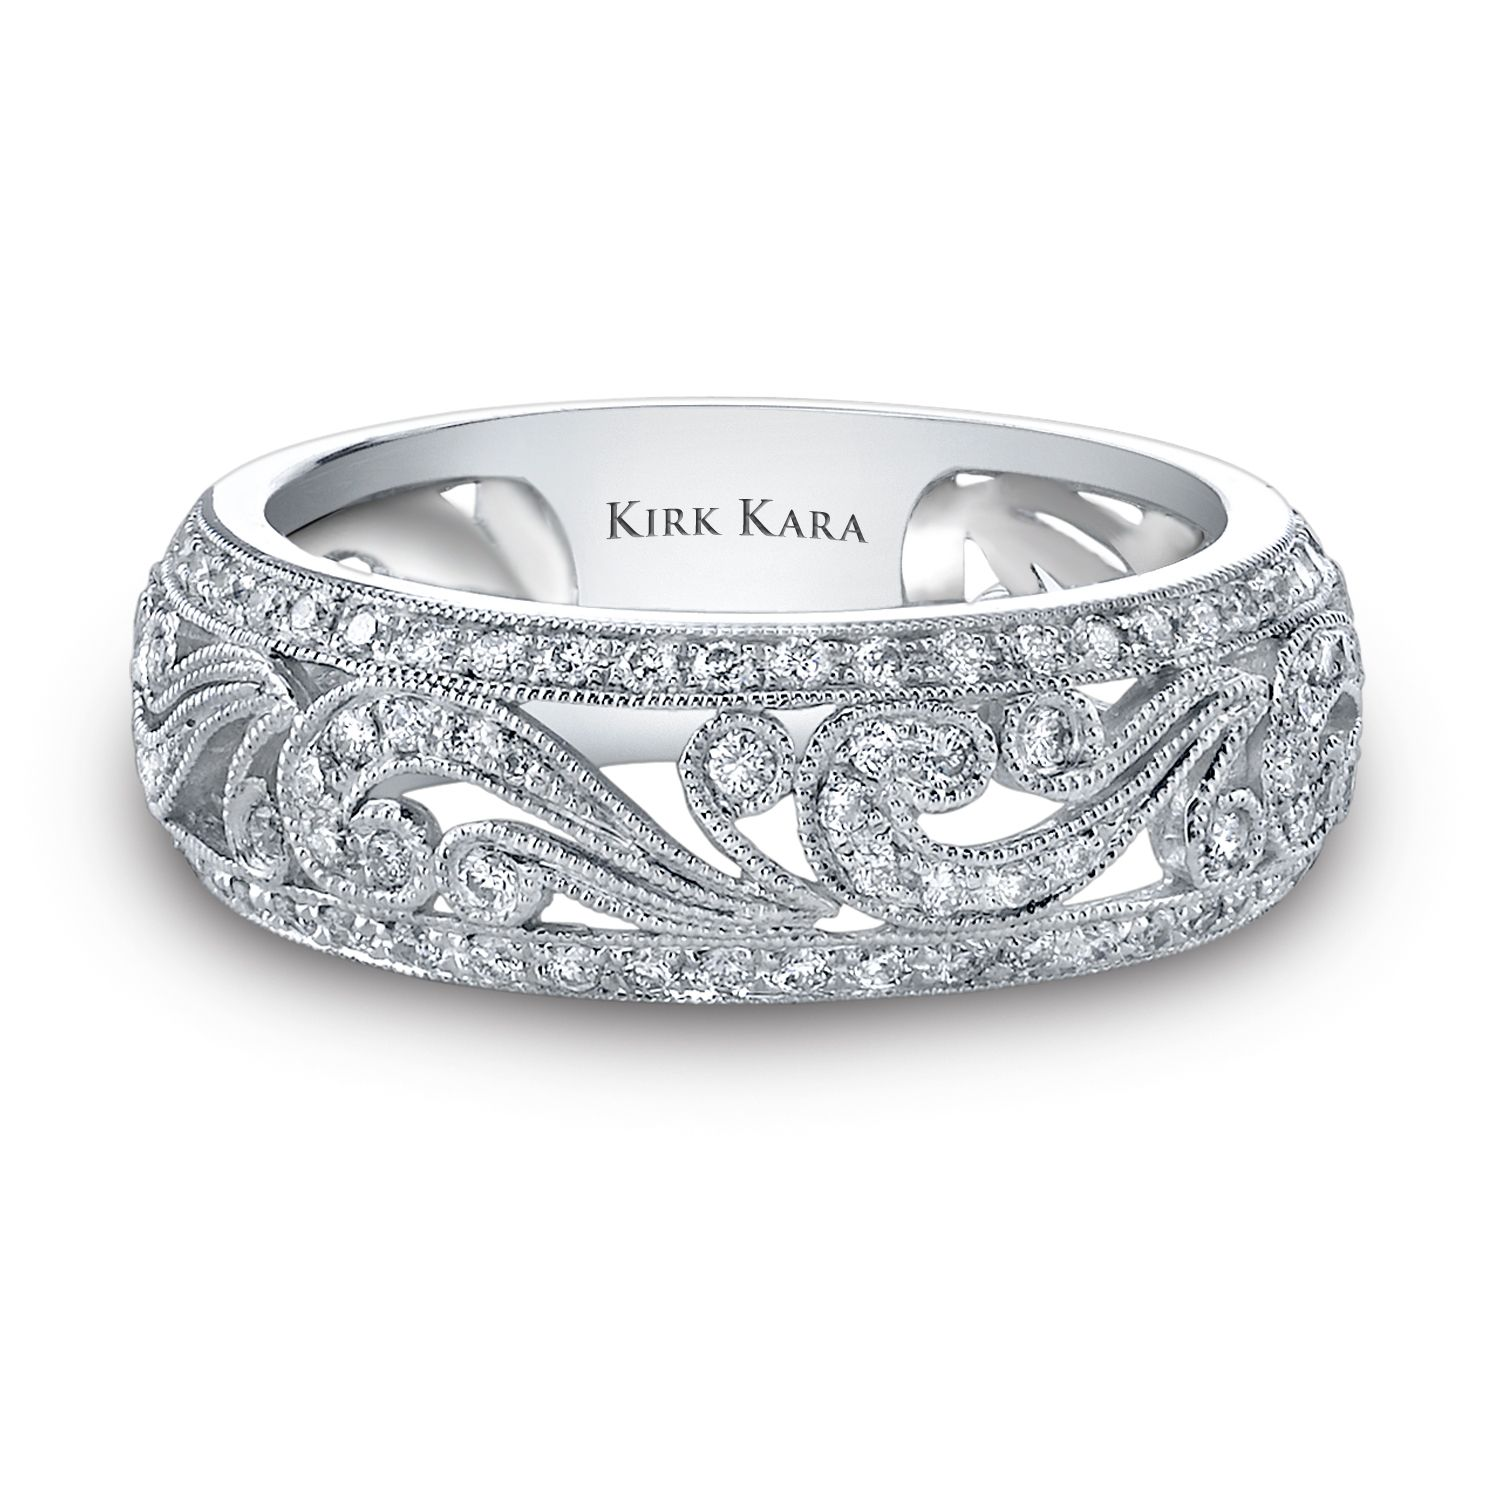 jared wedding rings Awesome Wedding bands for women wedding bands for women jared Unique Jewelry photo Wedding